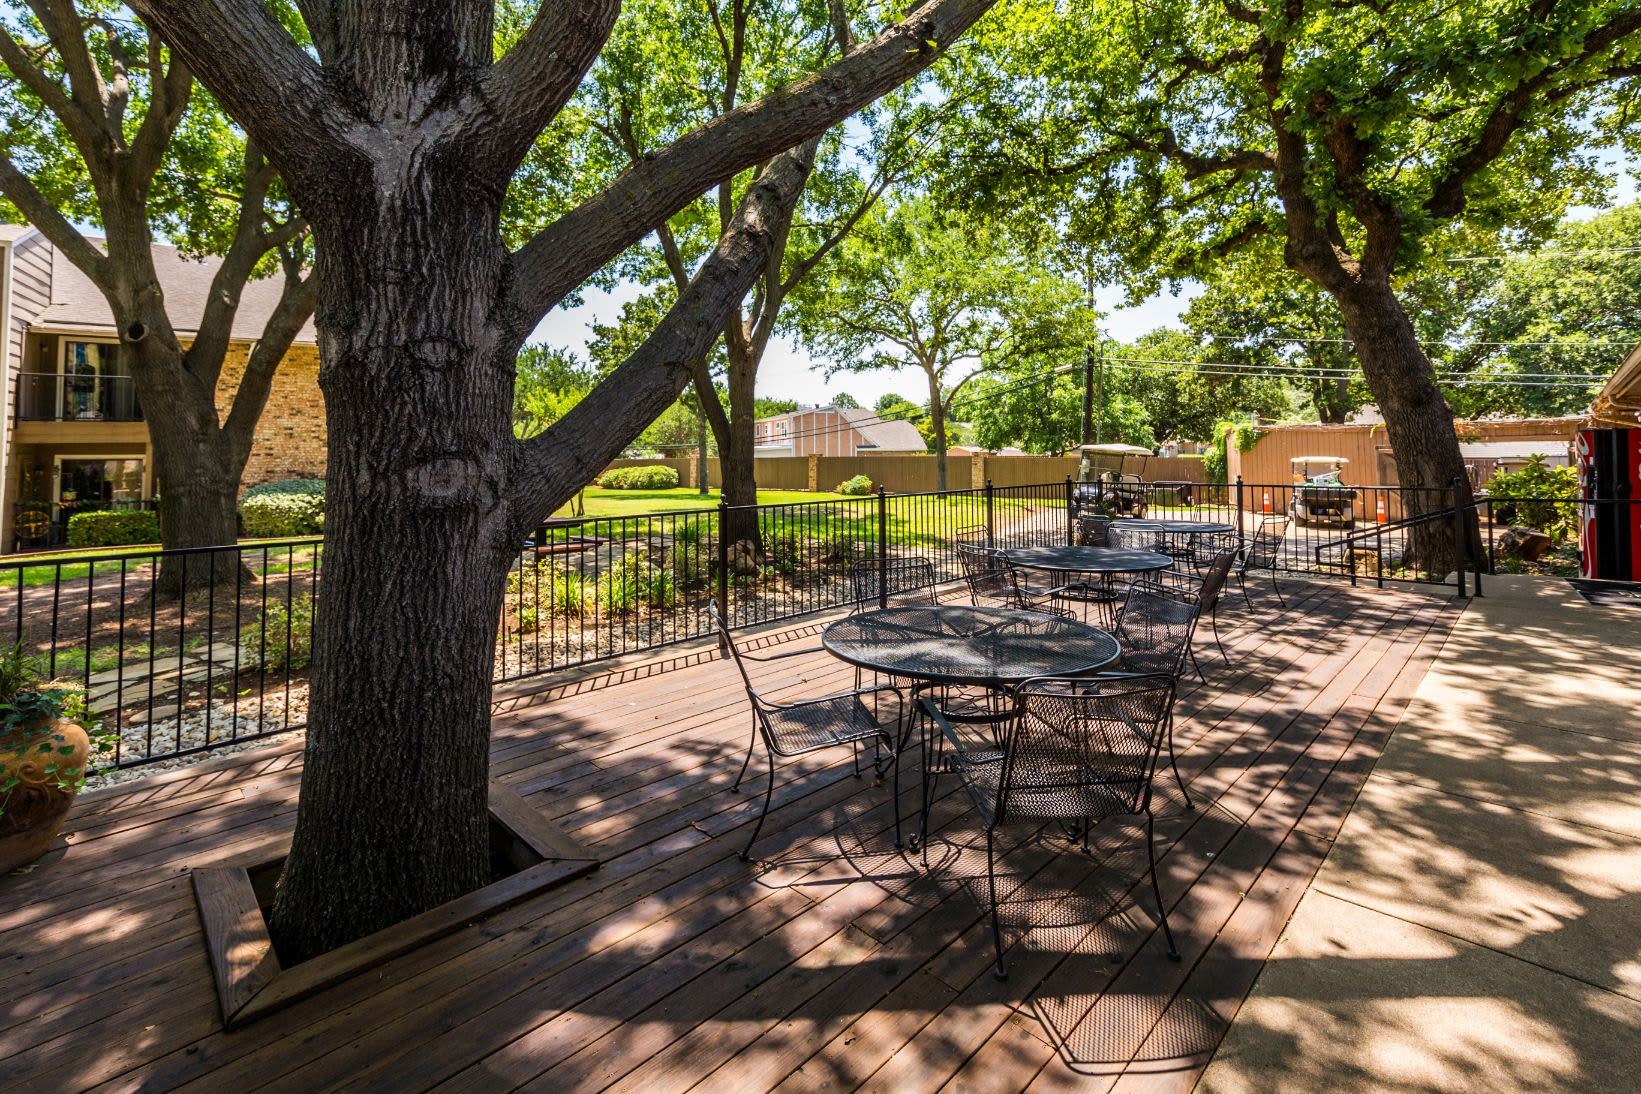 Outdoor seating area shaded by trees at The Park at Flower Mound in Flower Mound, Texas